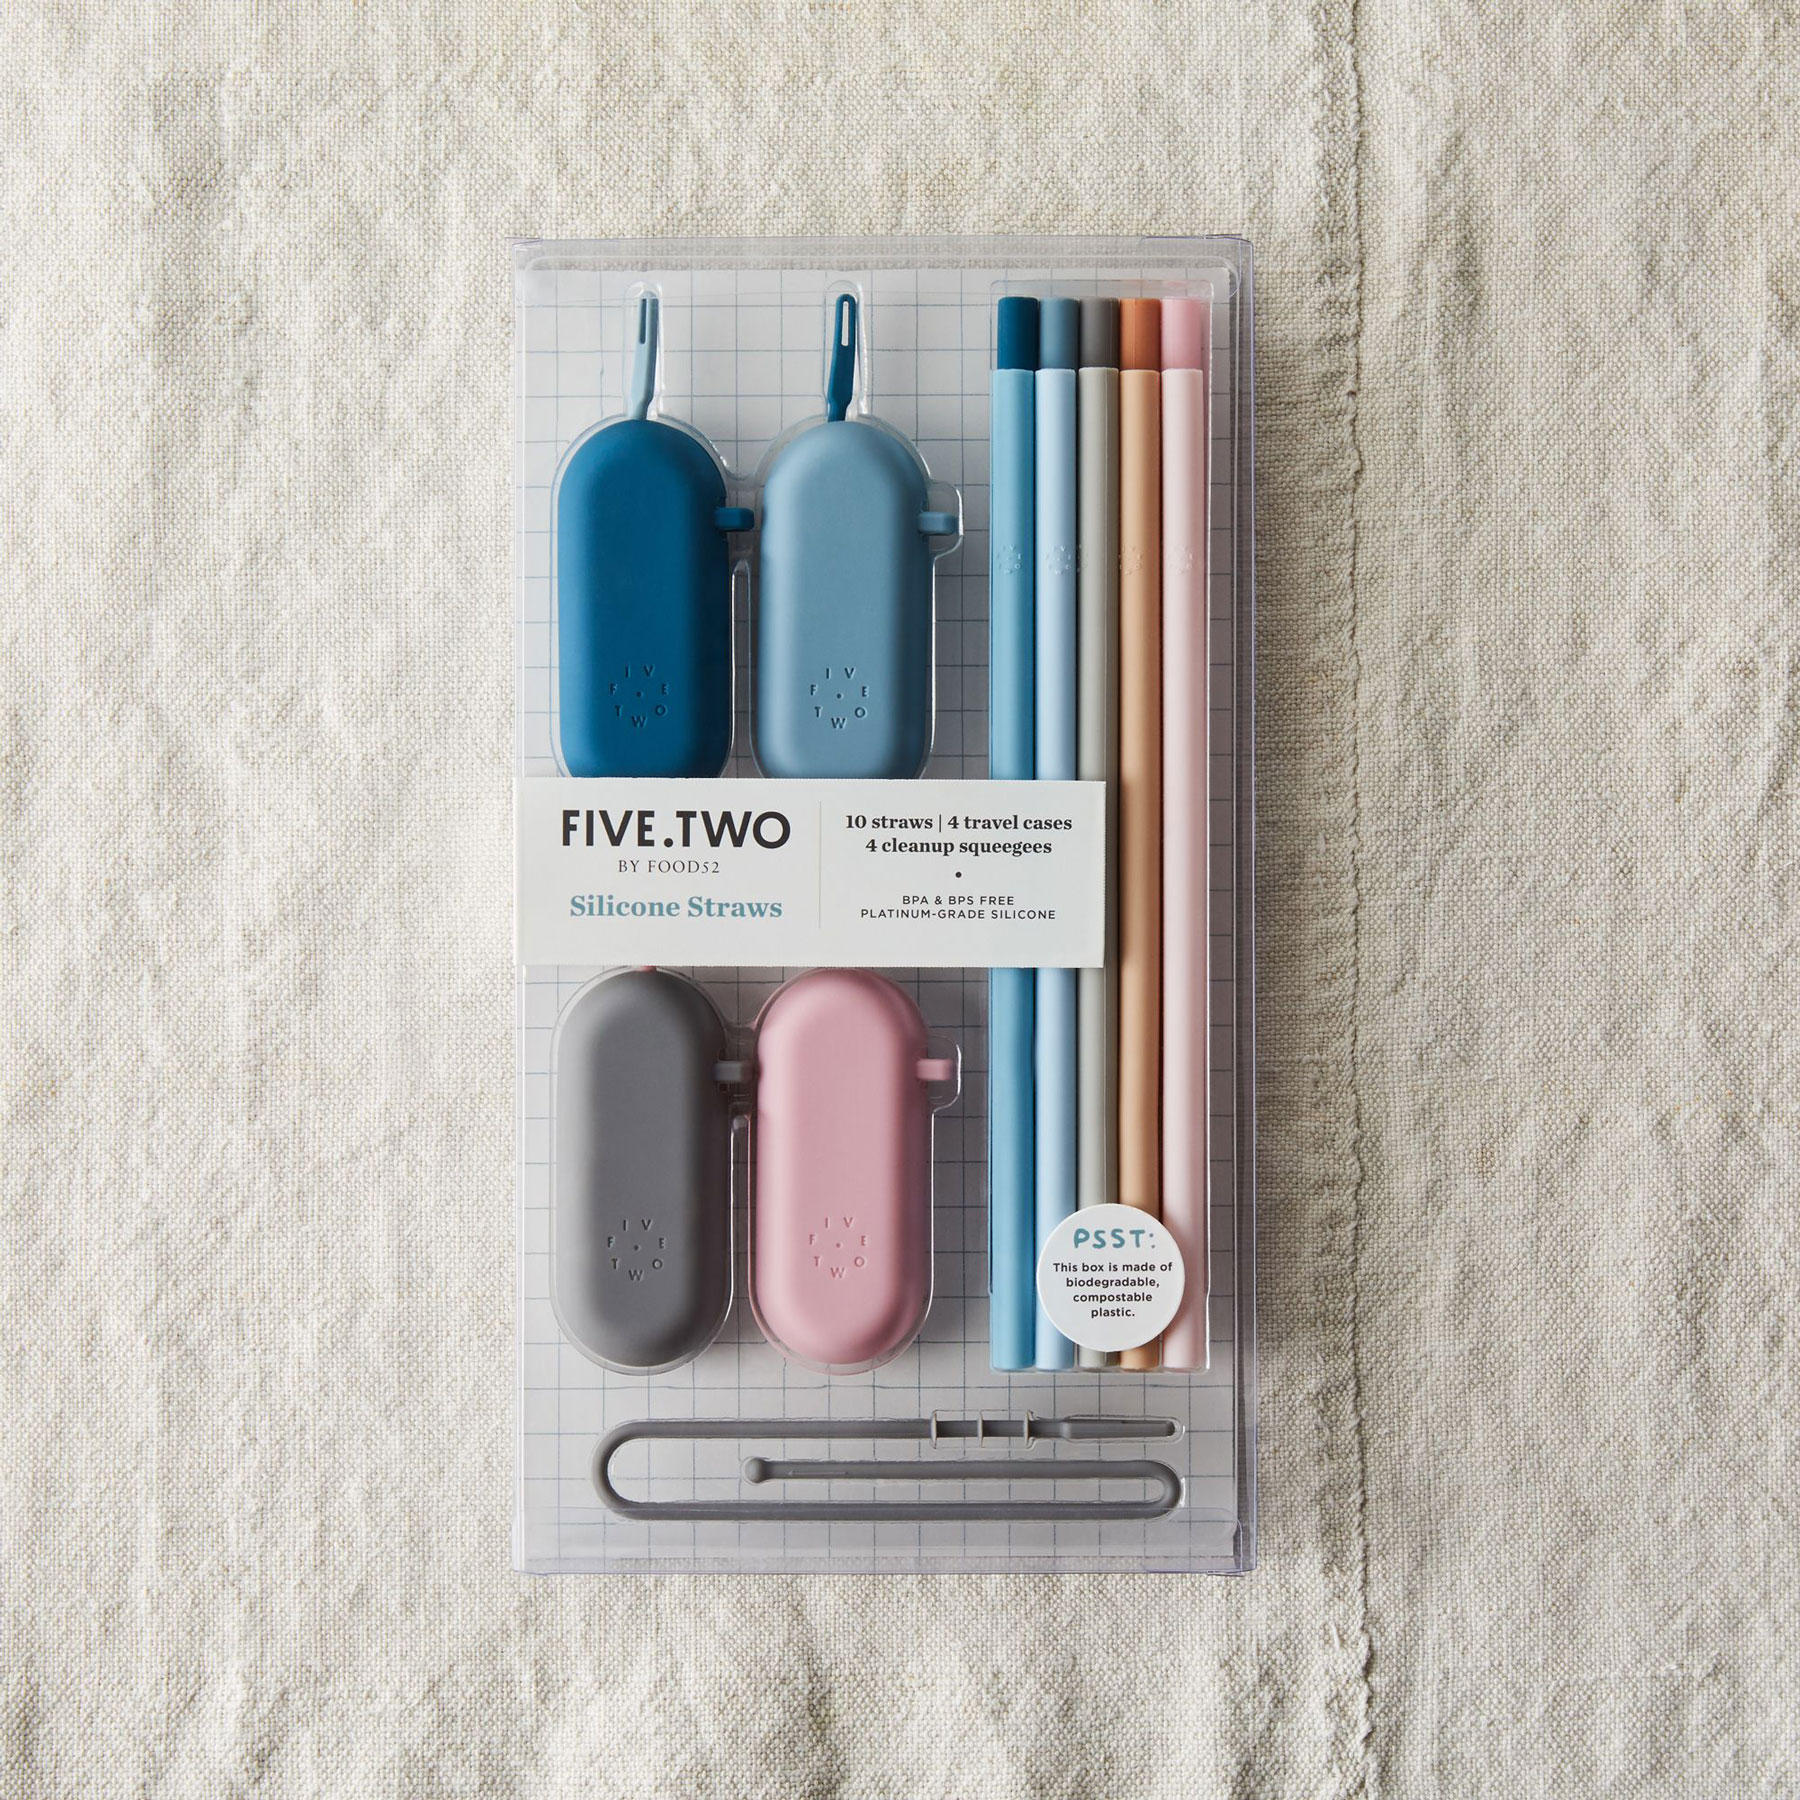 High school graduation gifts - Food52 Five Two Silicone reusable straws